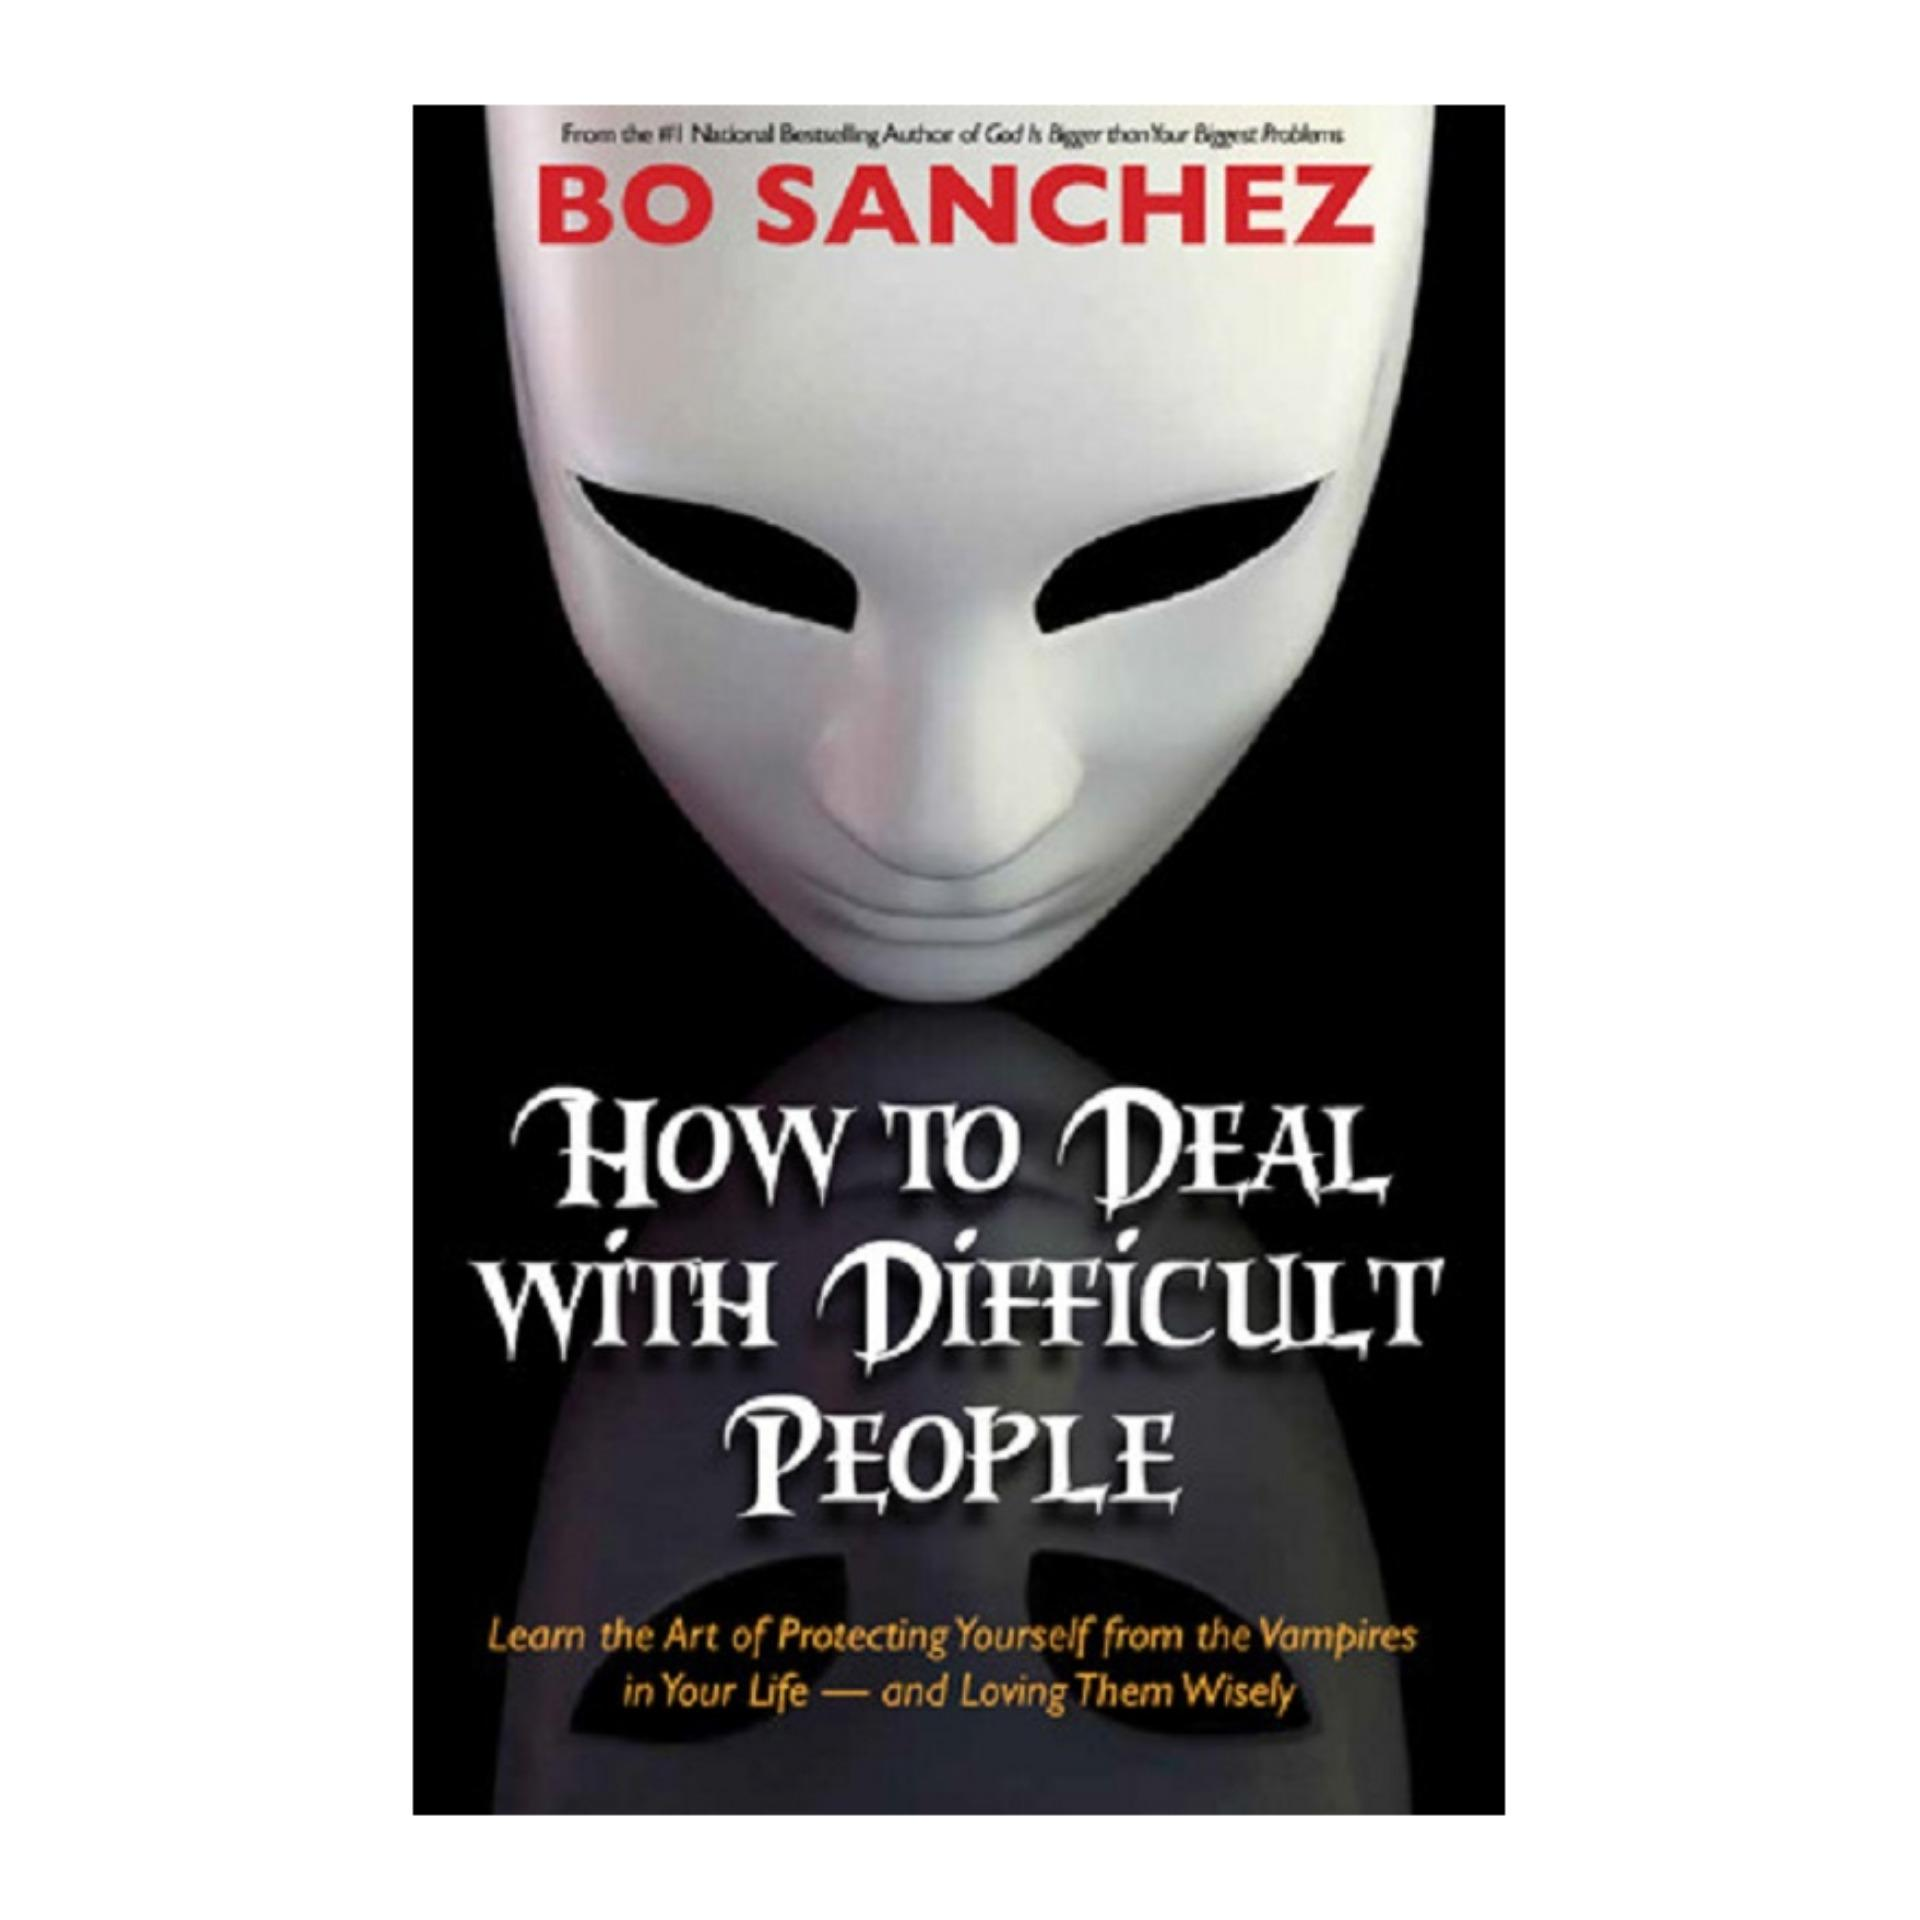 Local e books for sale philippine e books best seller prices bo sanchez how to deal with difficult people relationship book paperback 1pc fandeluxe Gallery